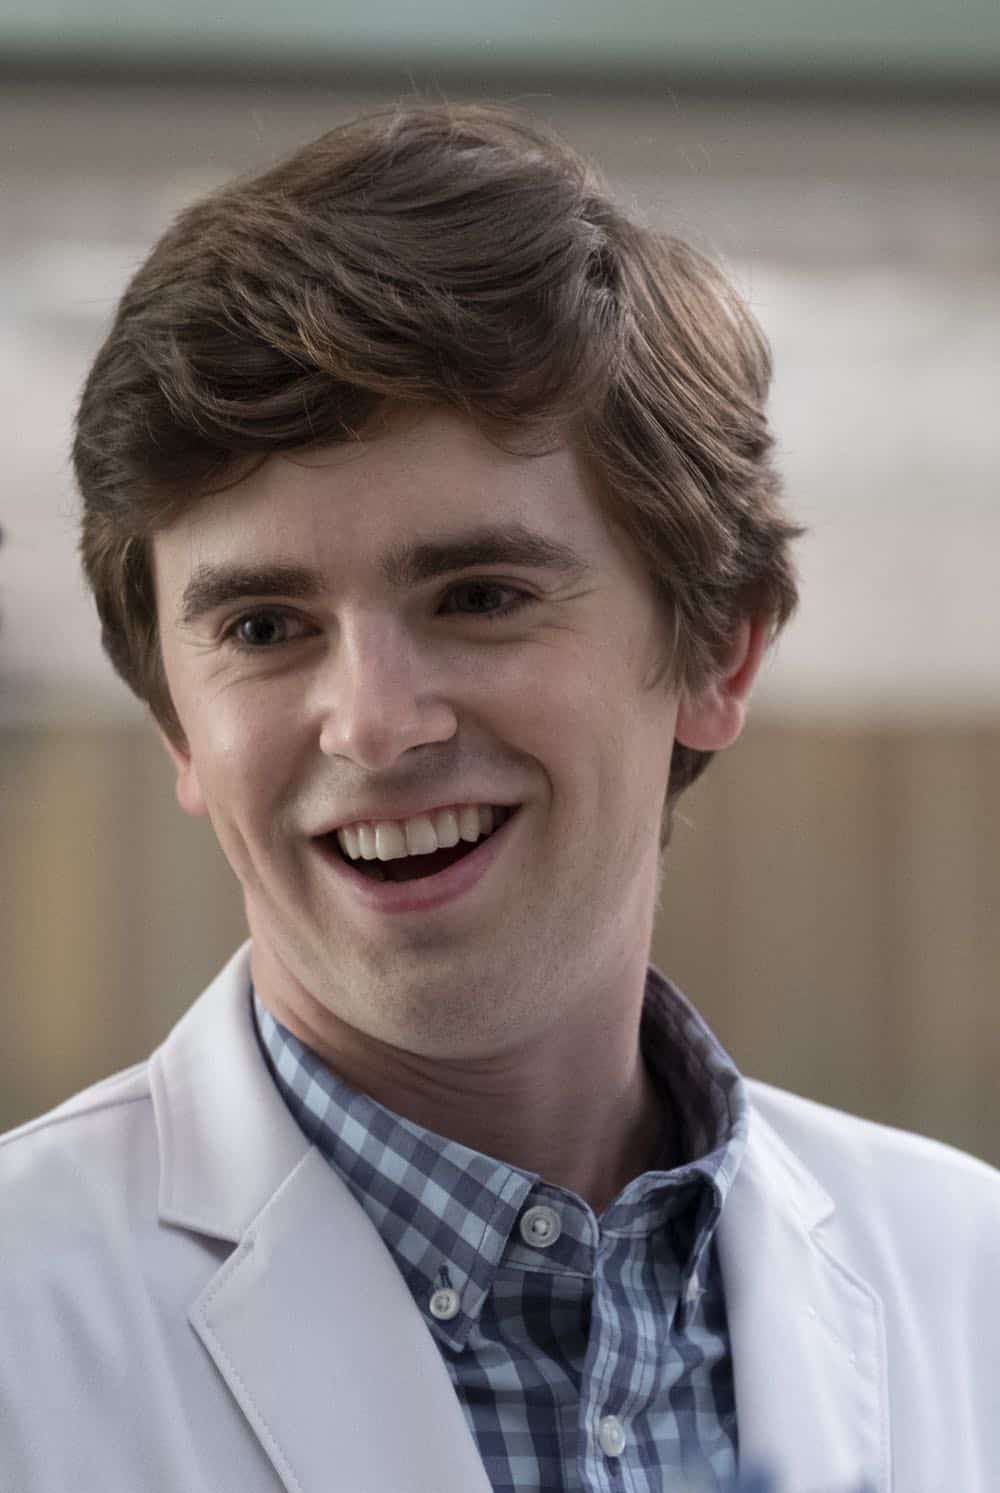 THE GOOD DOCTOR Season 2 Episode 2 Middle Ground 35